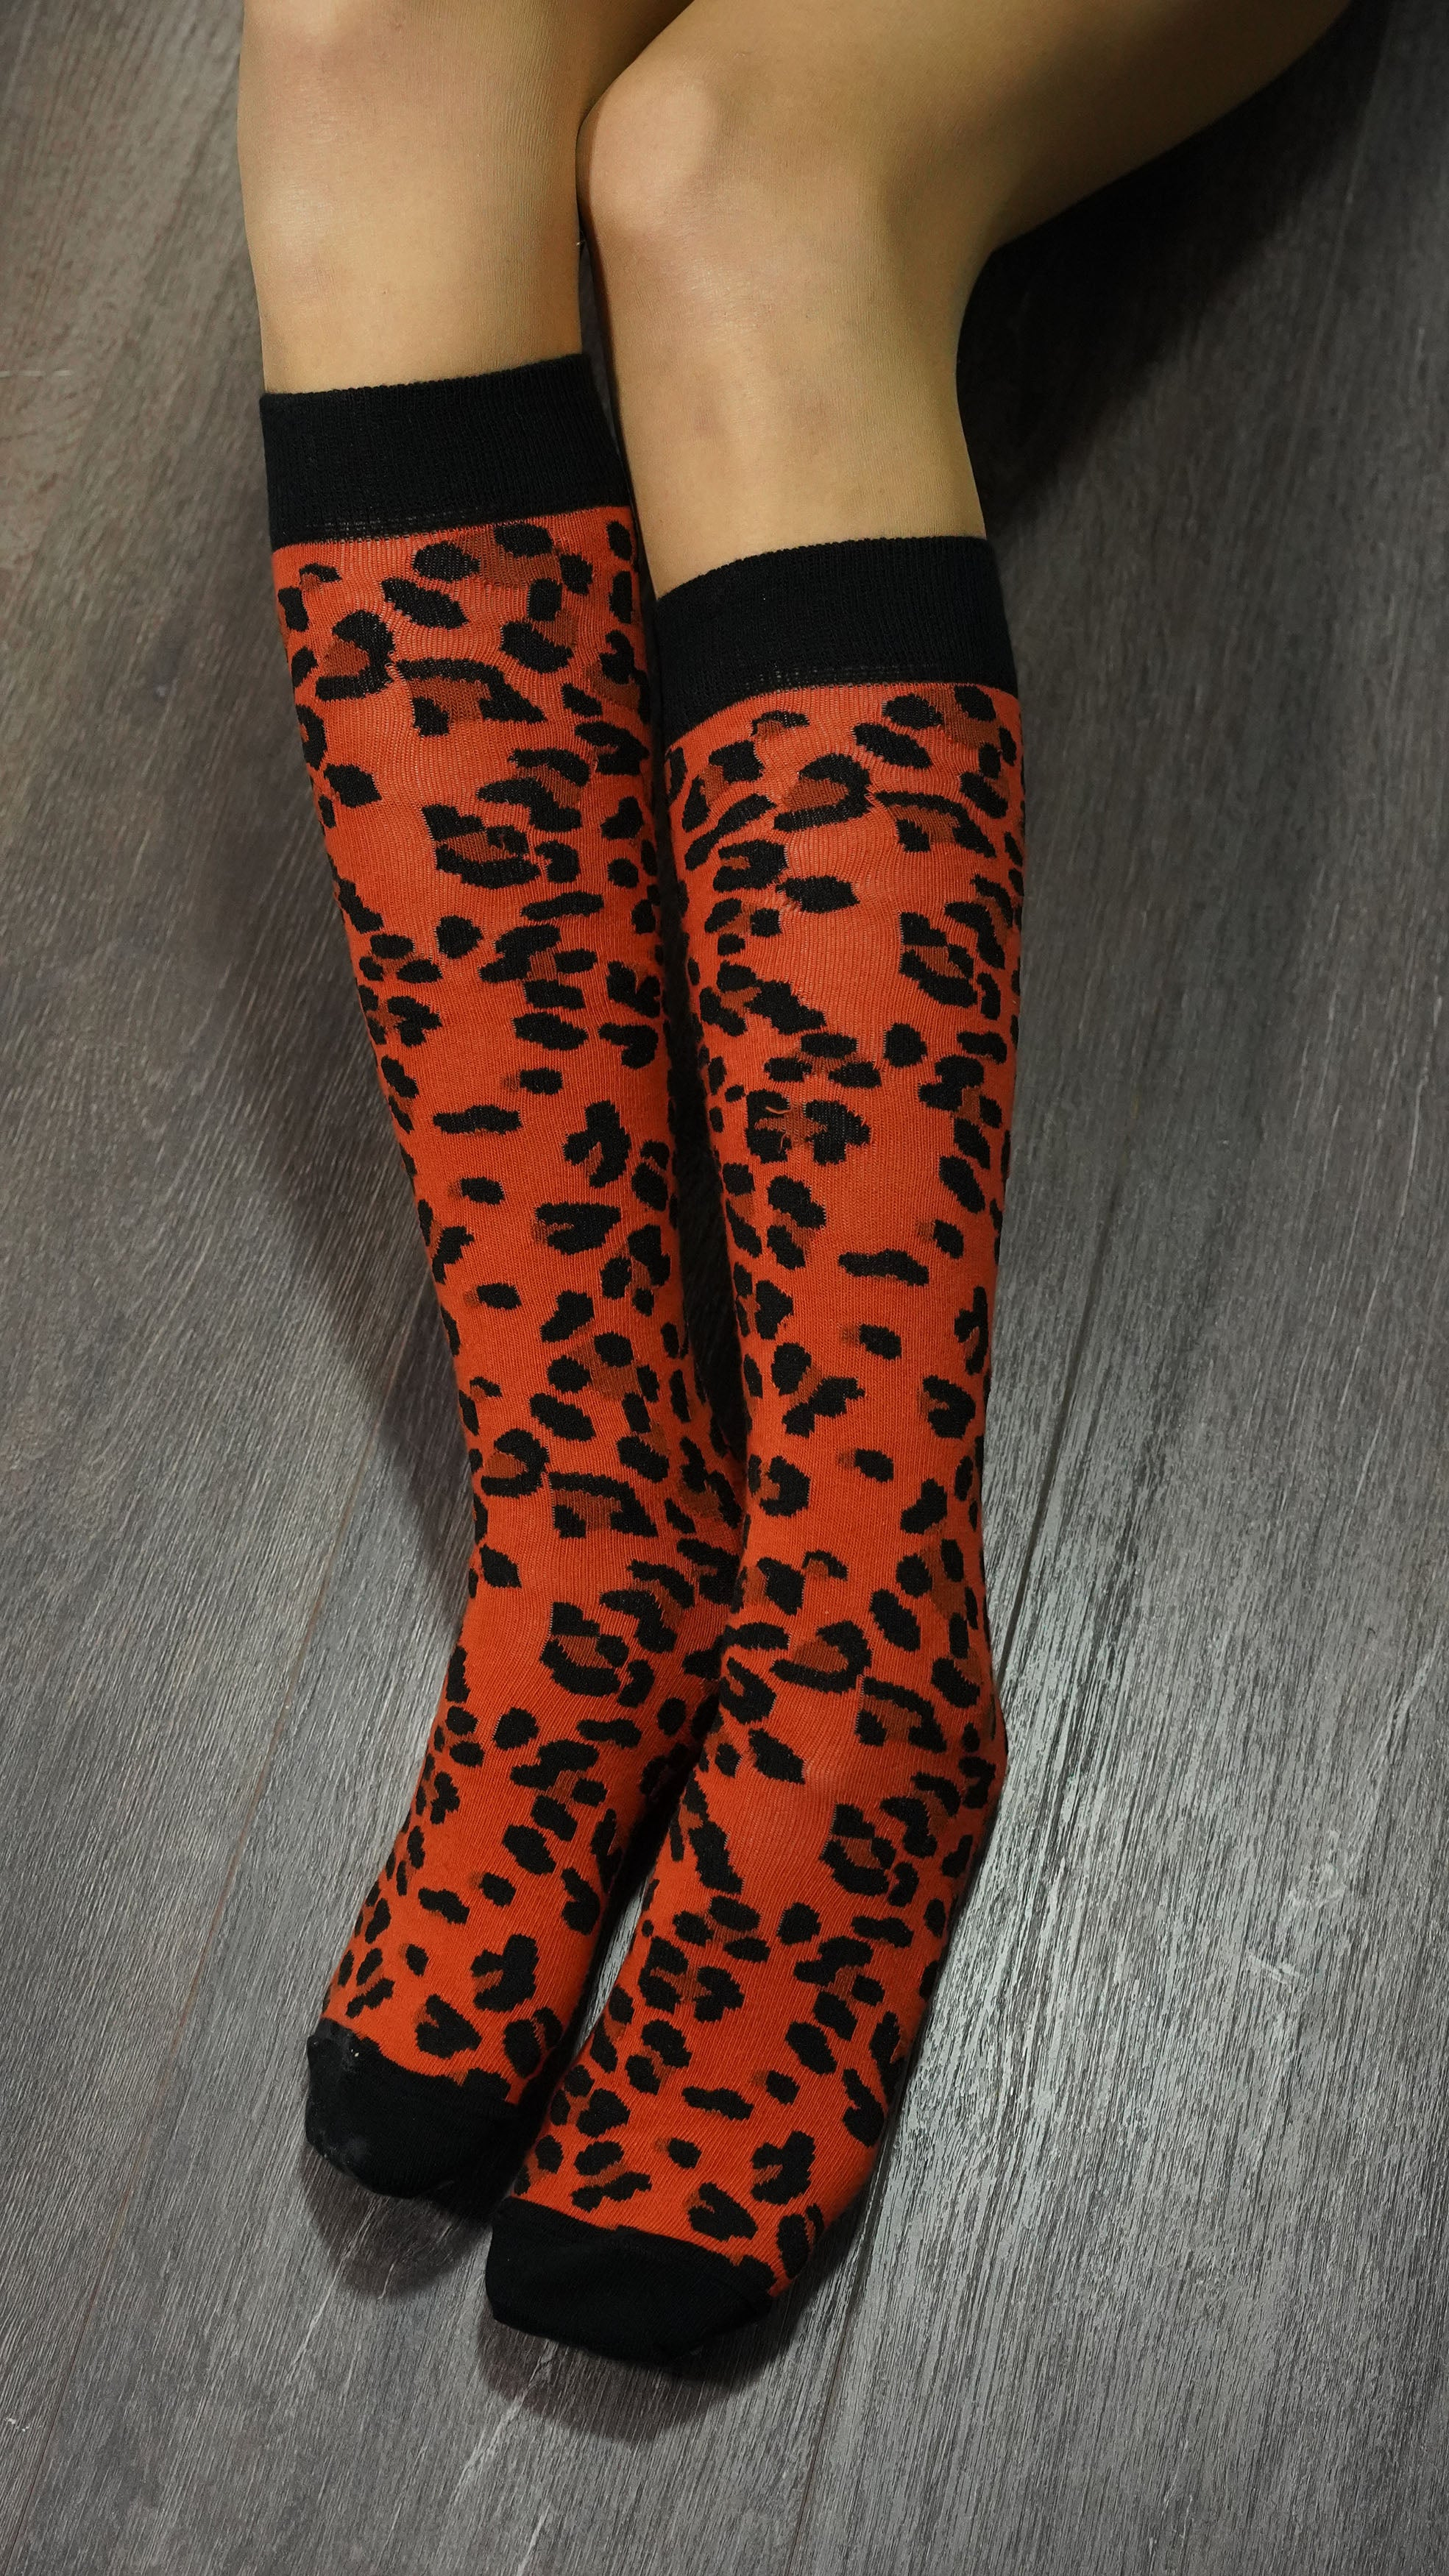 Women's Leopard Knee High Socks